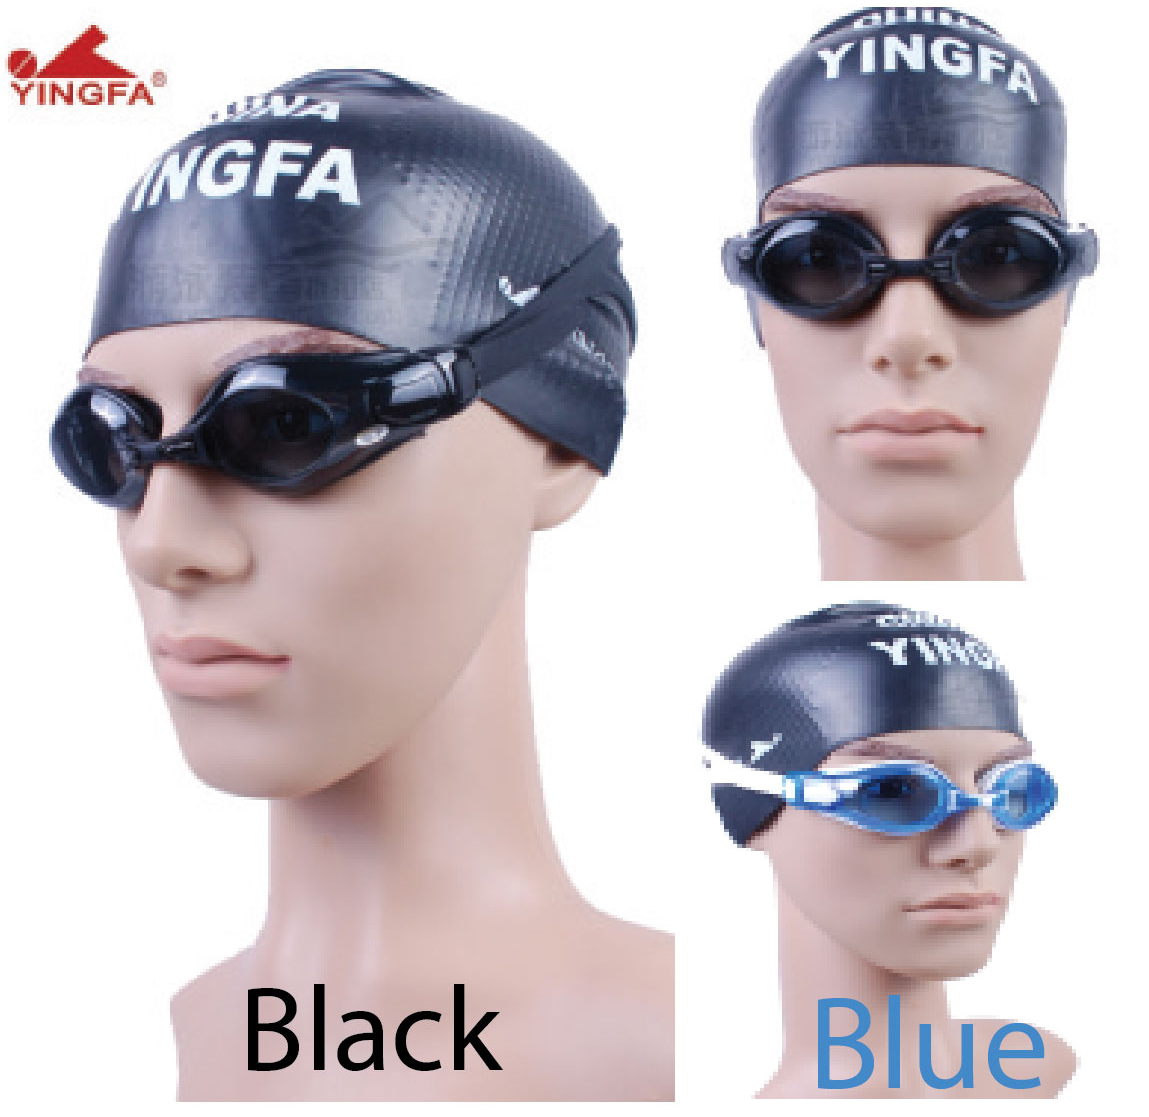 0507b51103 Yingfa OK3800 prescription swimming goggles for nearsighted ...